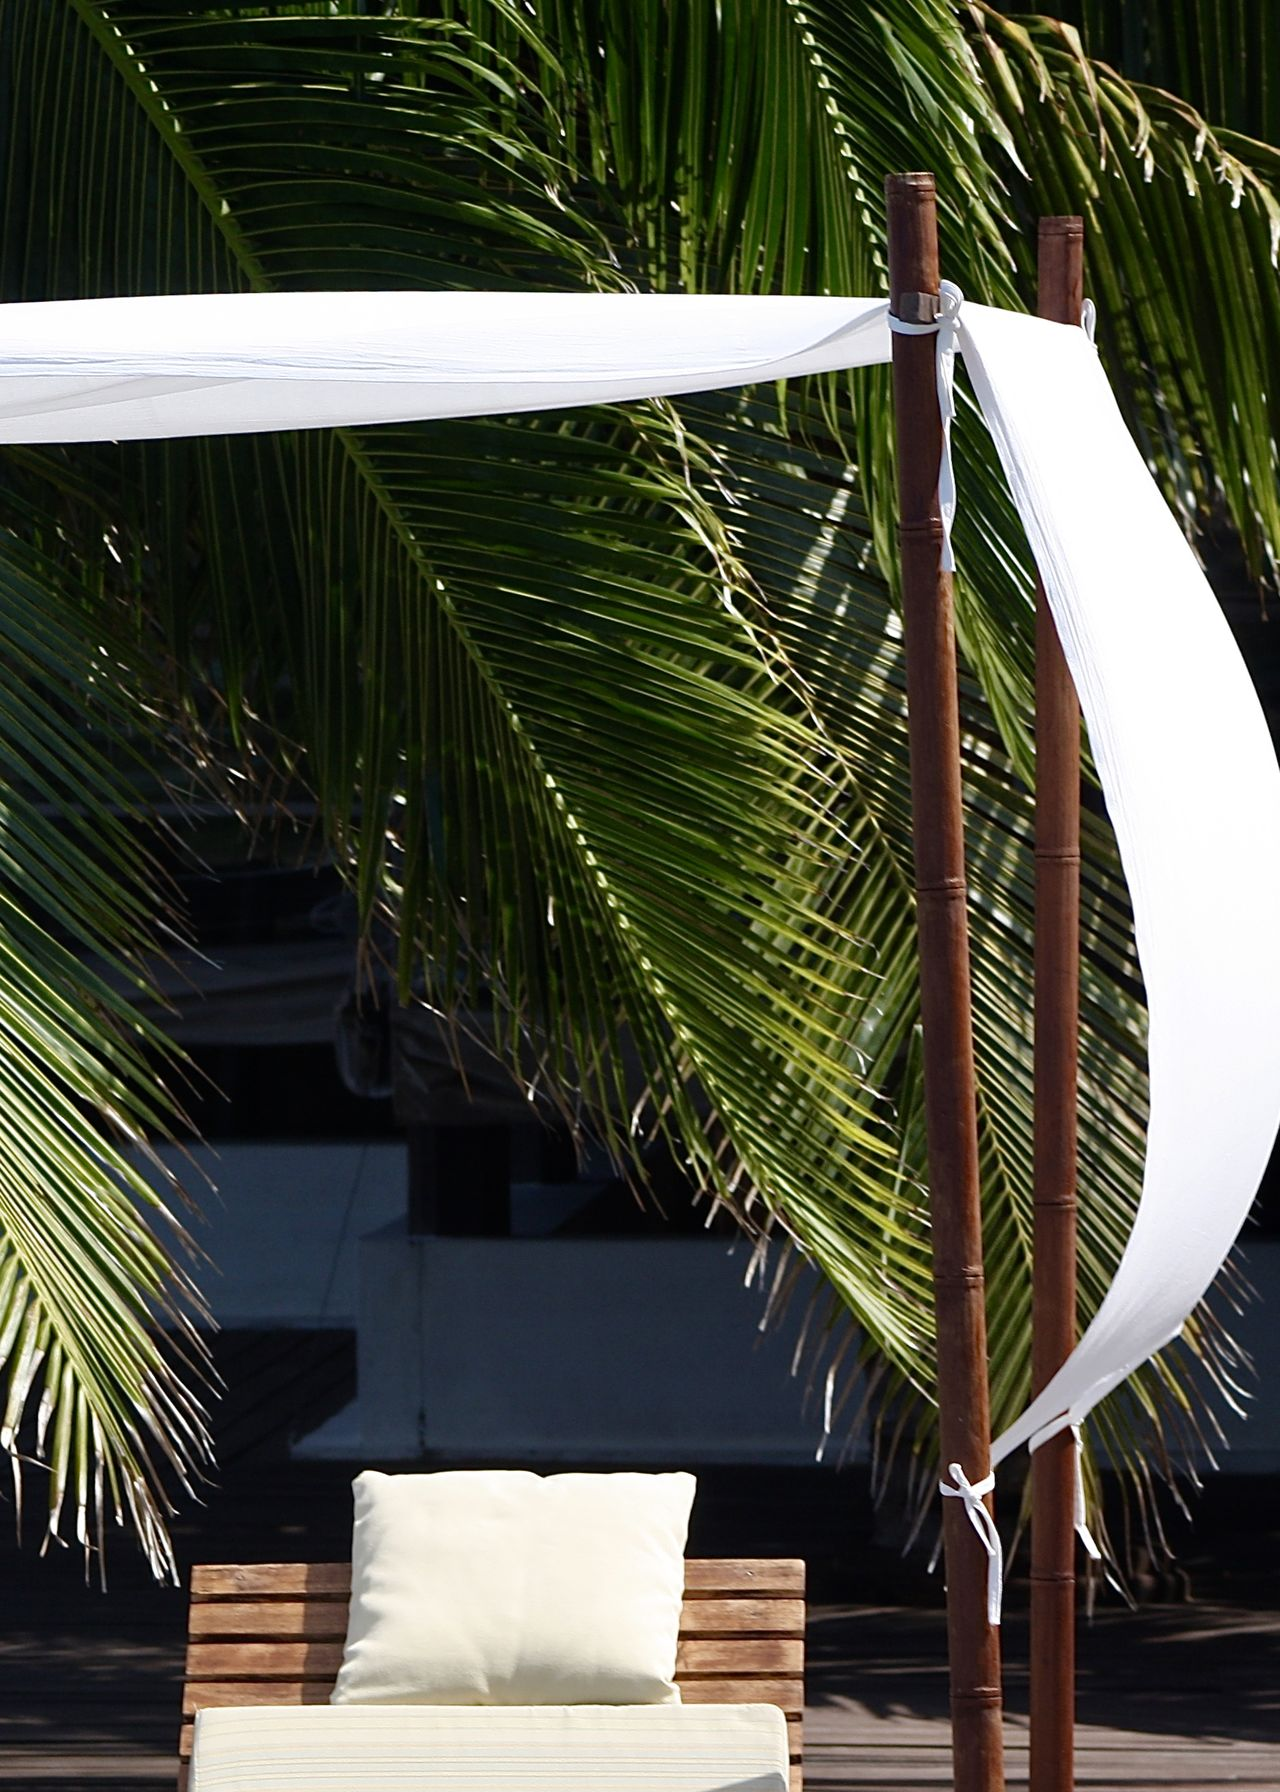 sunbed on pool deck under palm tree Canvas Deck Chair Green And White Green Color Greenery Light And Shadow Nature Outdoors Palm Leaf Palm Tree Pantone Colors By GIZMON Pattern Pillow Plant Plant Relaxing Scenics Summer Sunbathing Sunbed Sunshine Take Your Place Tropical Vacation White